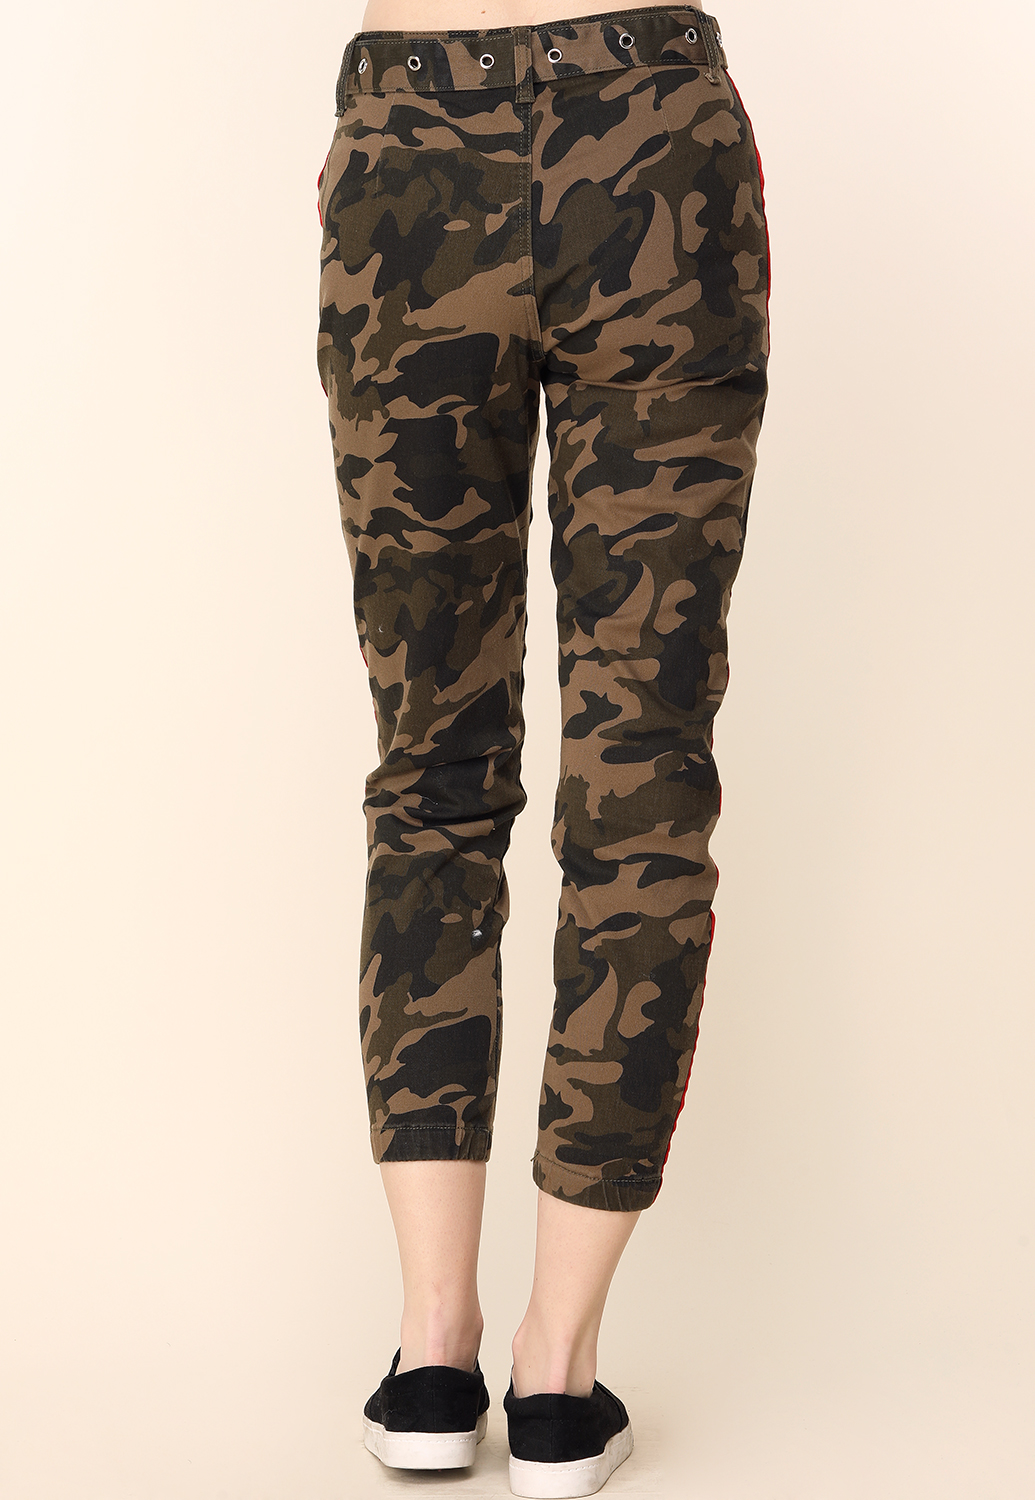 Camo Sde Lined Pants With Belt